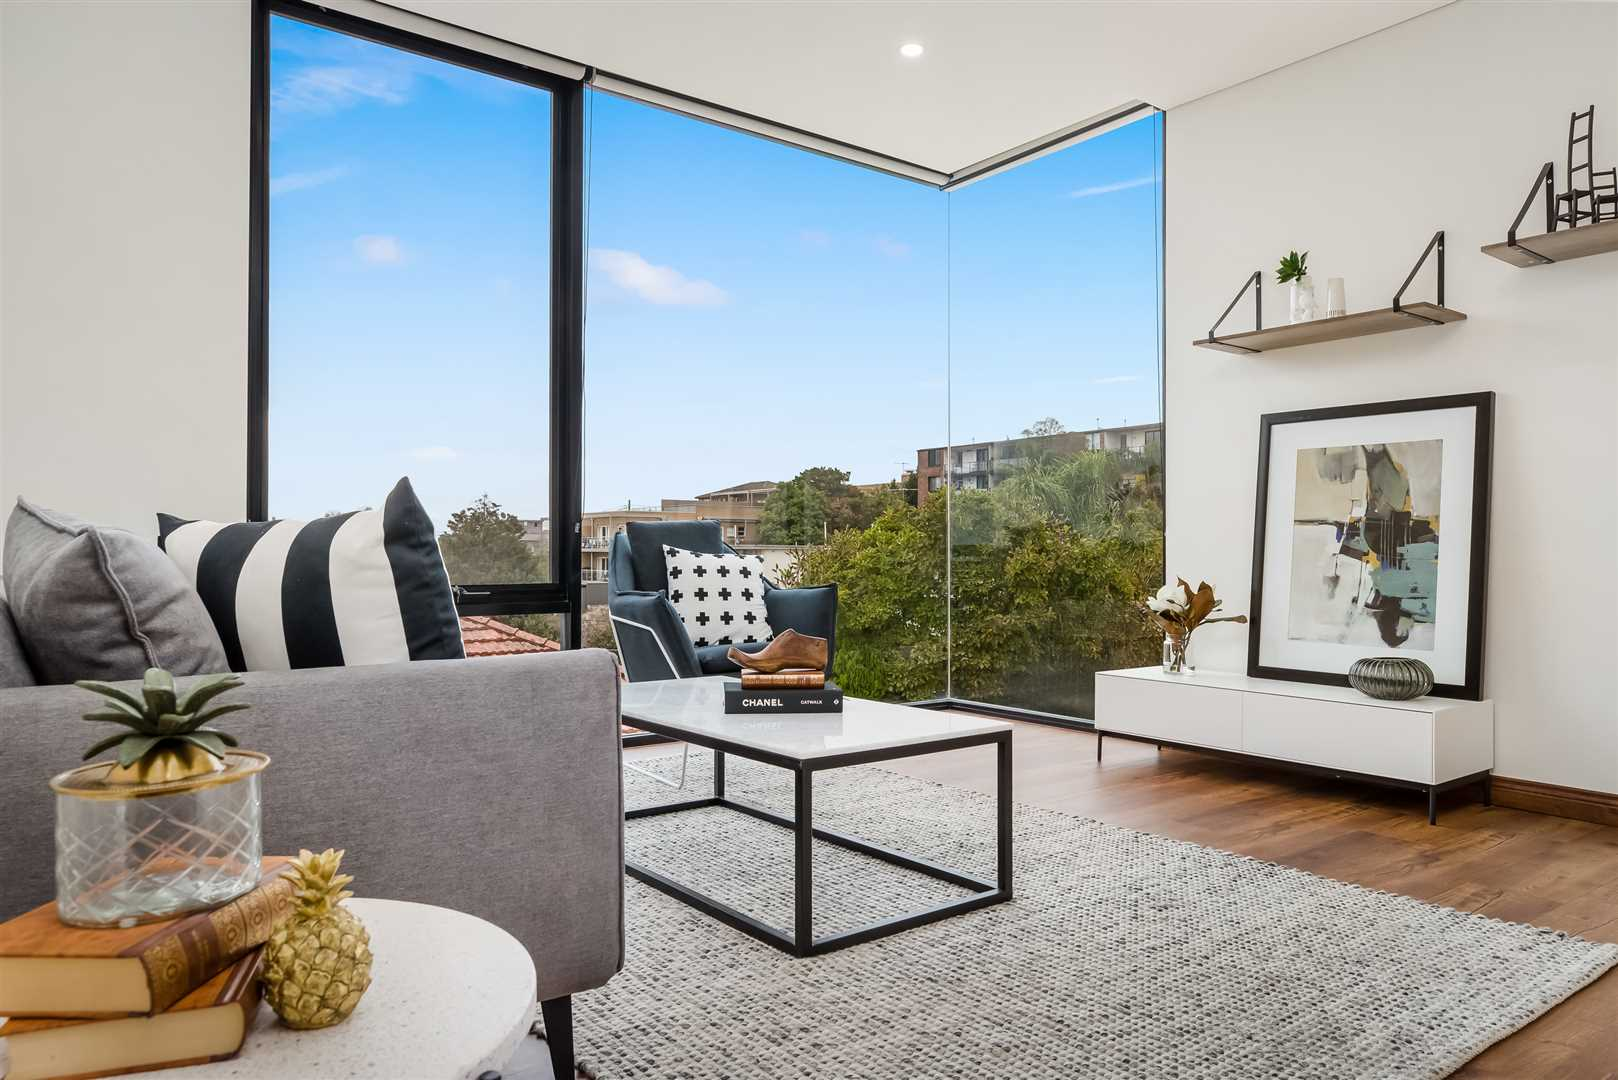 Premium Executive Style Living In A Boutique Setting